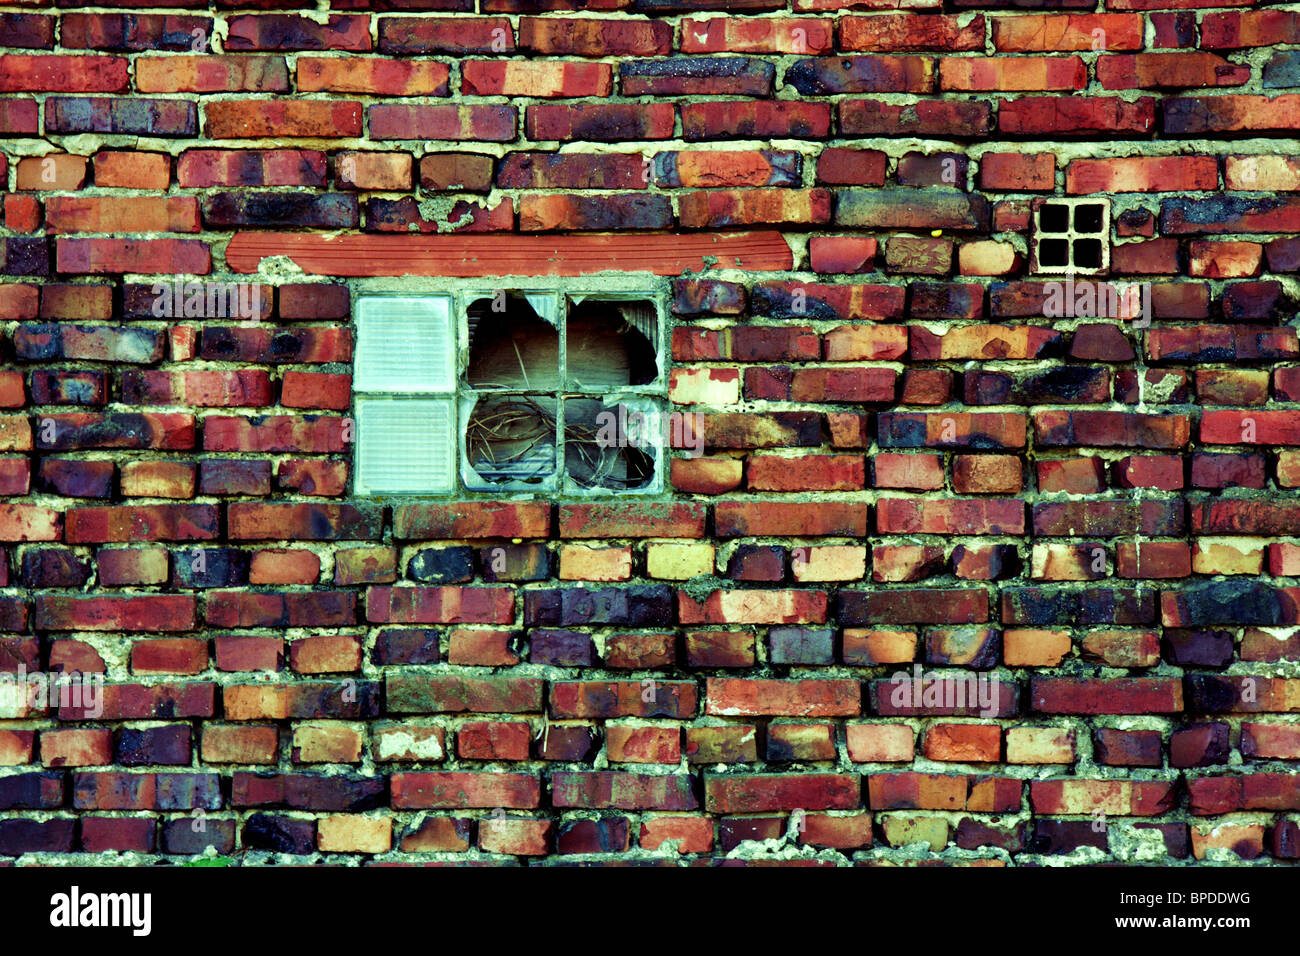 Broken window in red brick wall - Stock Image